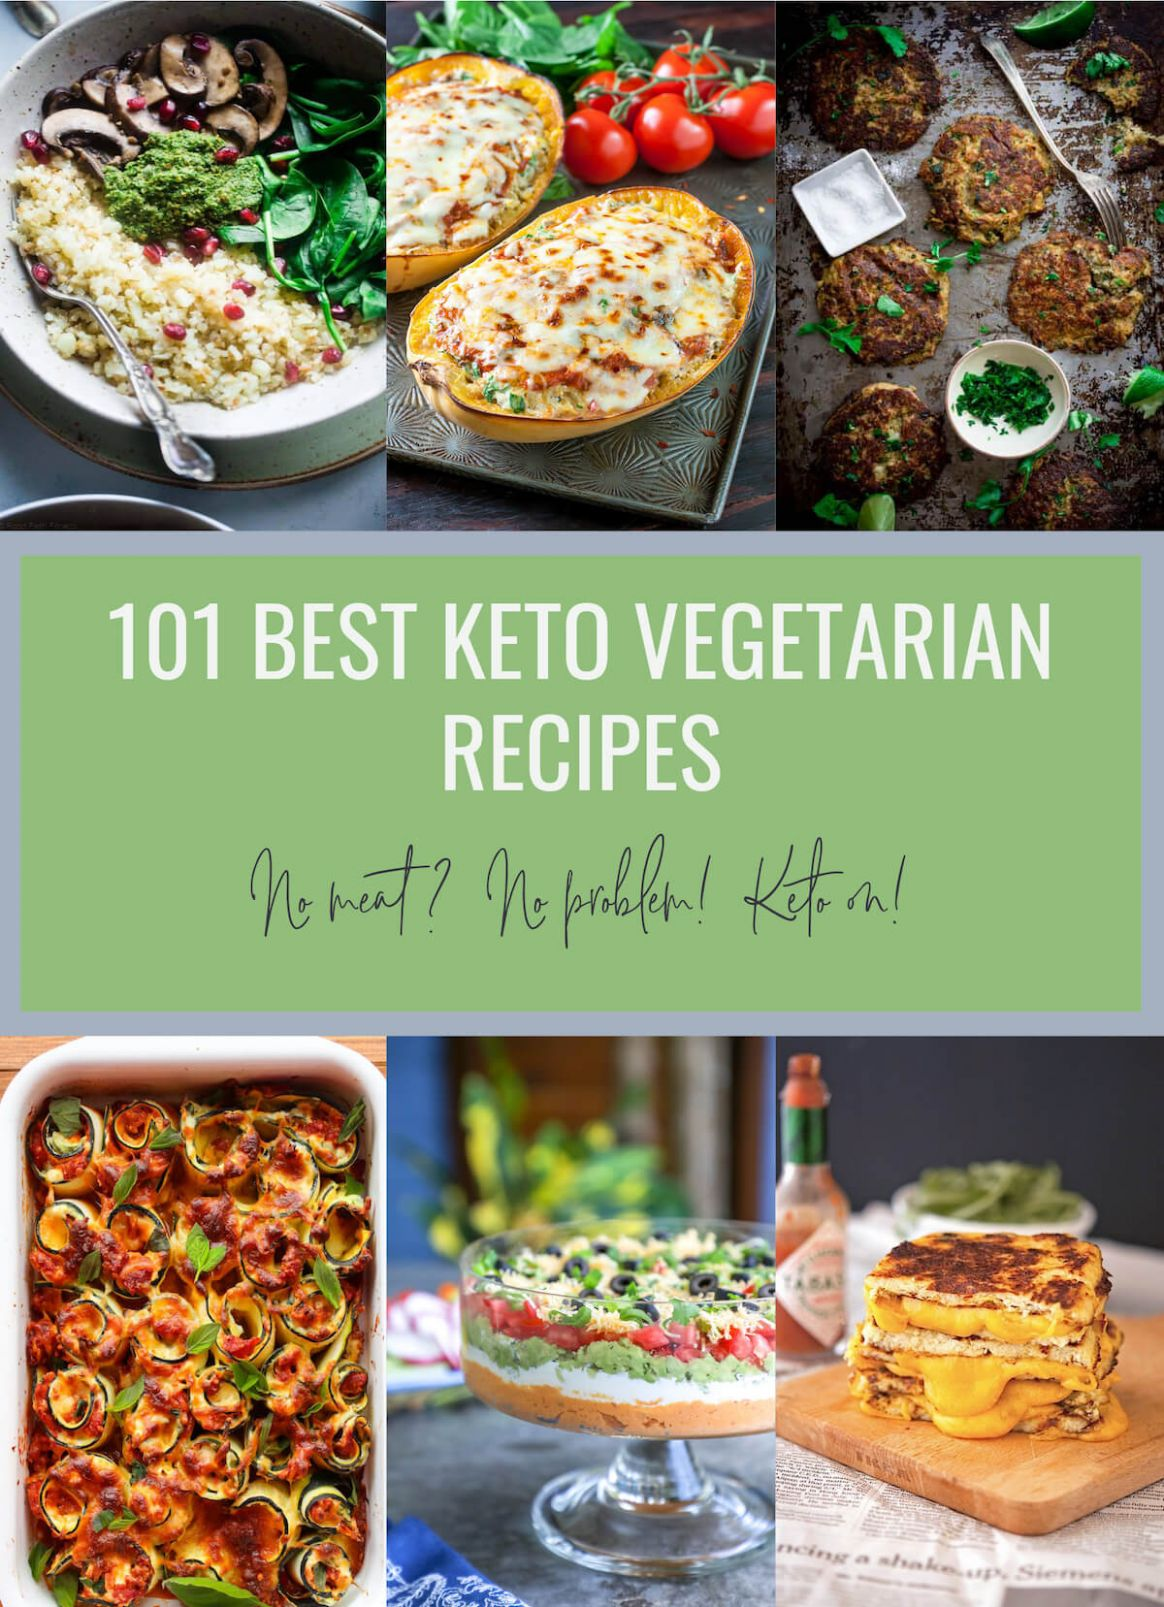 8 Best Keto Vegetarian Recipes - Low Carb | I Breathe I'm Hungry